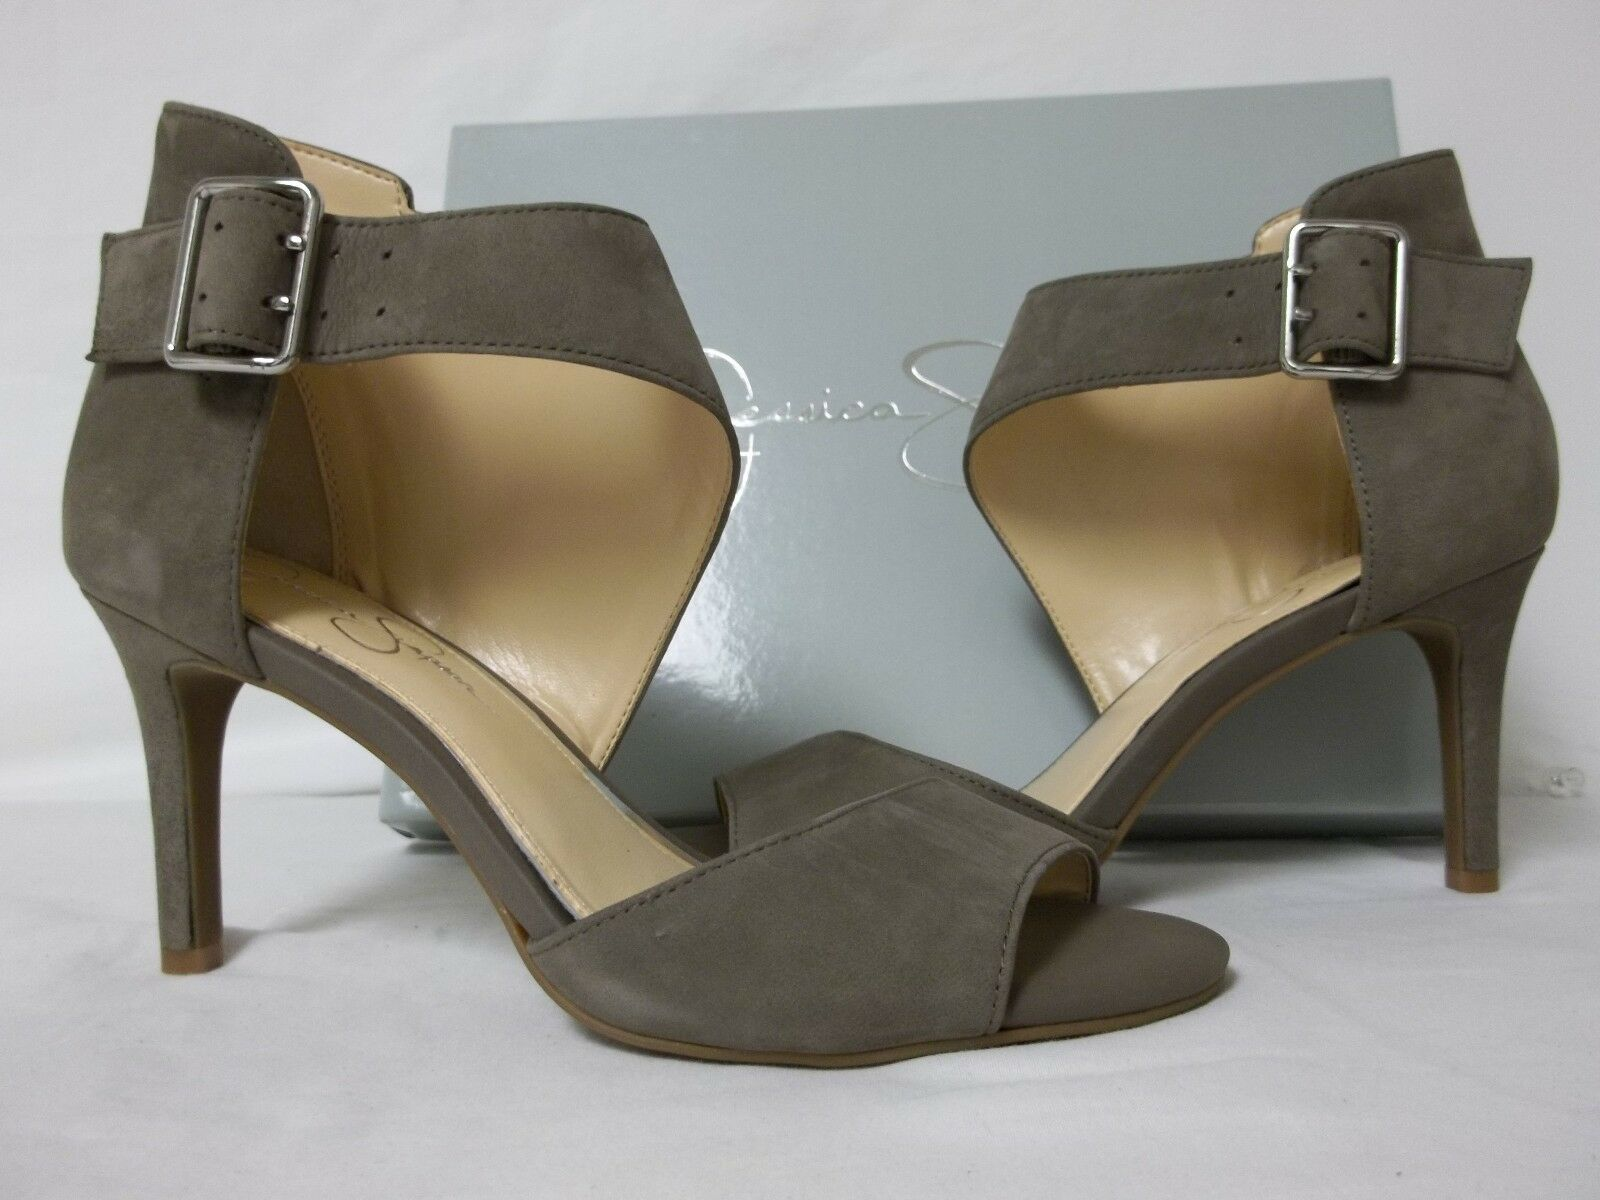 vendita calda online Jessica Simpson 8.5 M Marrionn Taupe Leather Open Open Open Toe Heels New donna scarpe  grande vendita